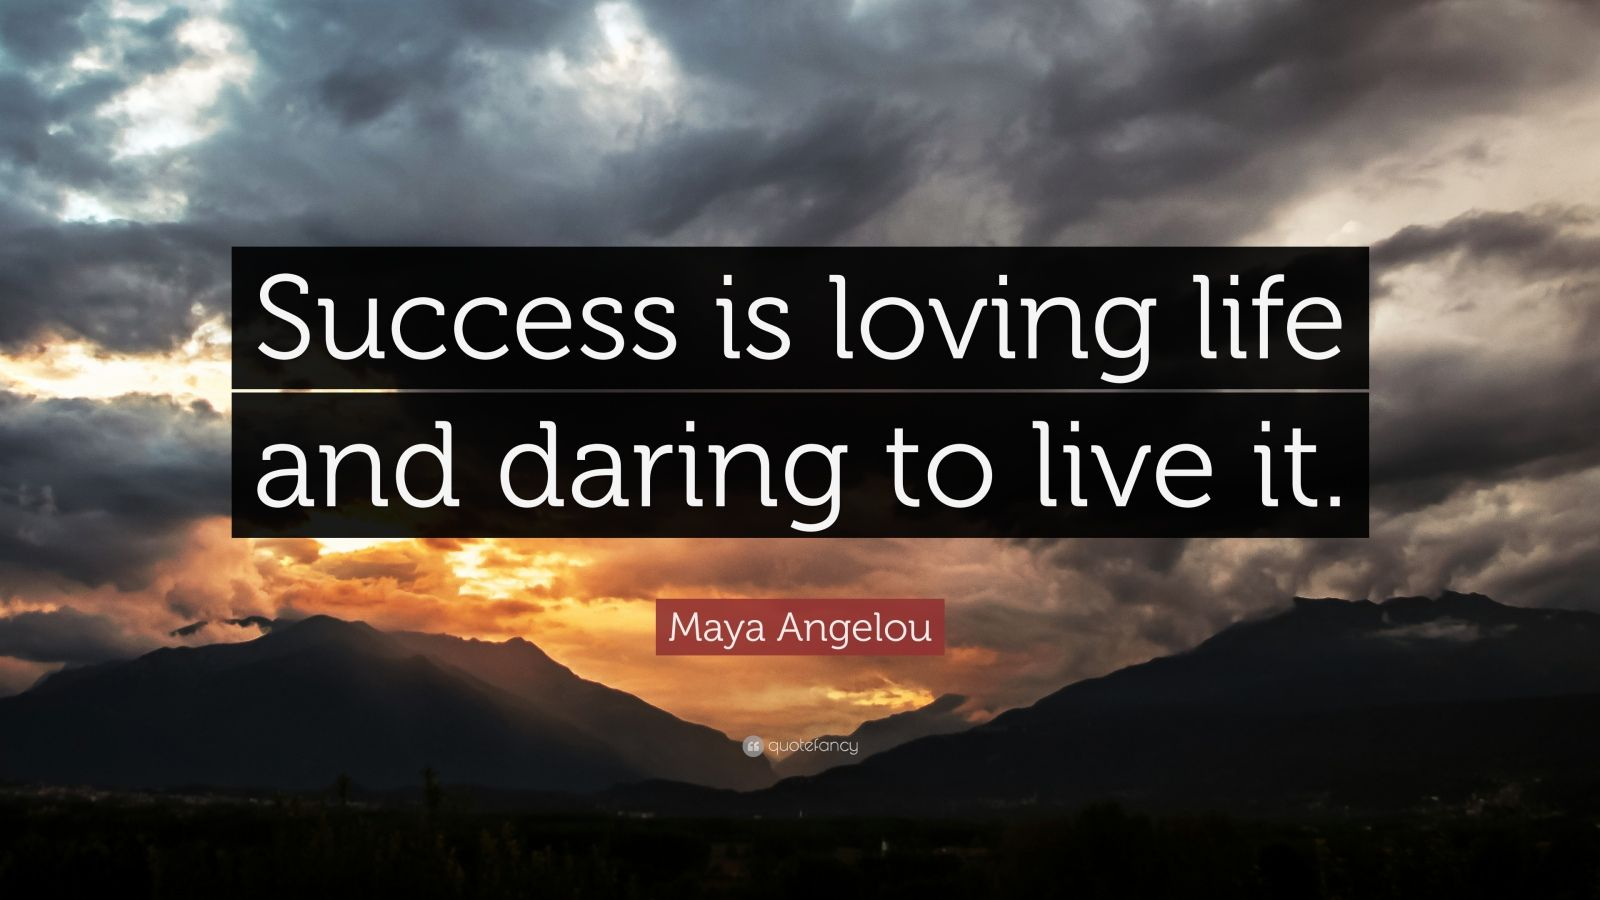 maya angelou quote   u201csuccess is loving life and daring to